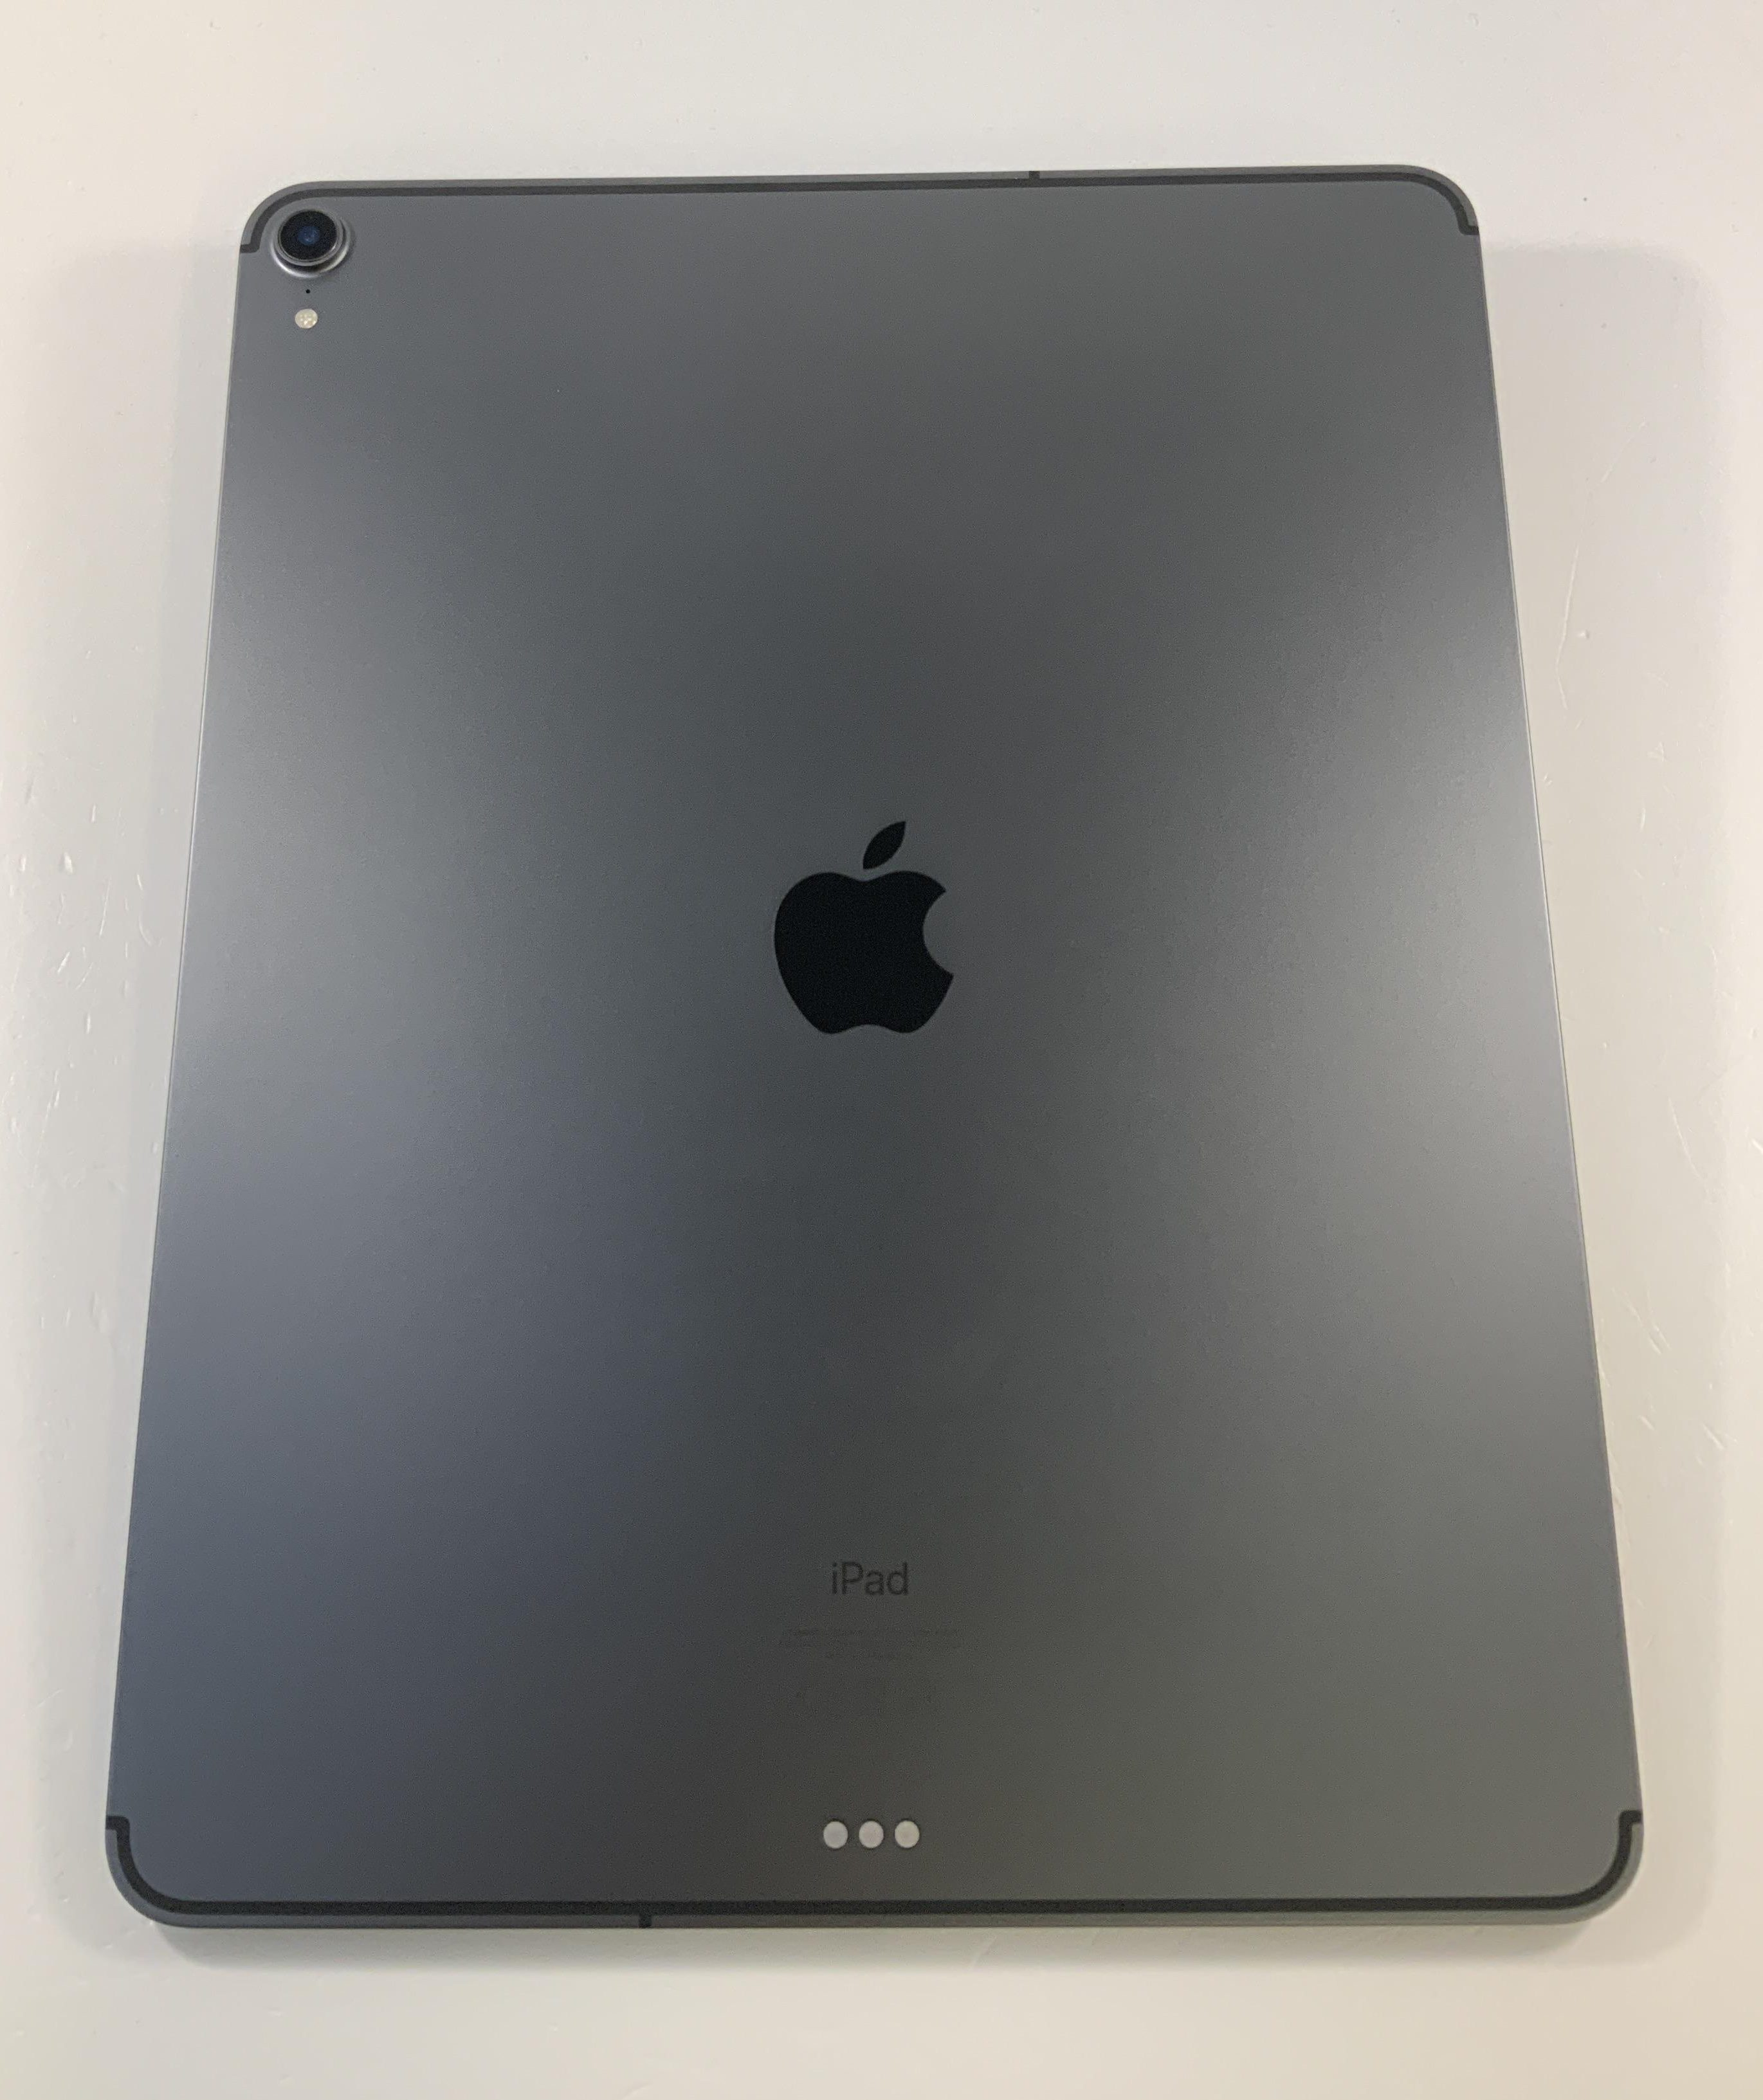 "iPad Pro 12.9"" Wi-Fi + Cellular (3rd Gen) 64GB, 64GB, Space Gray, image 2"